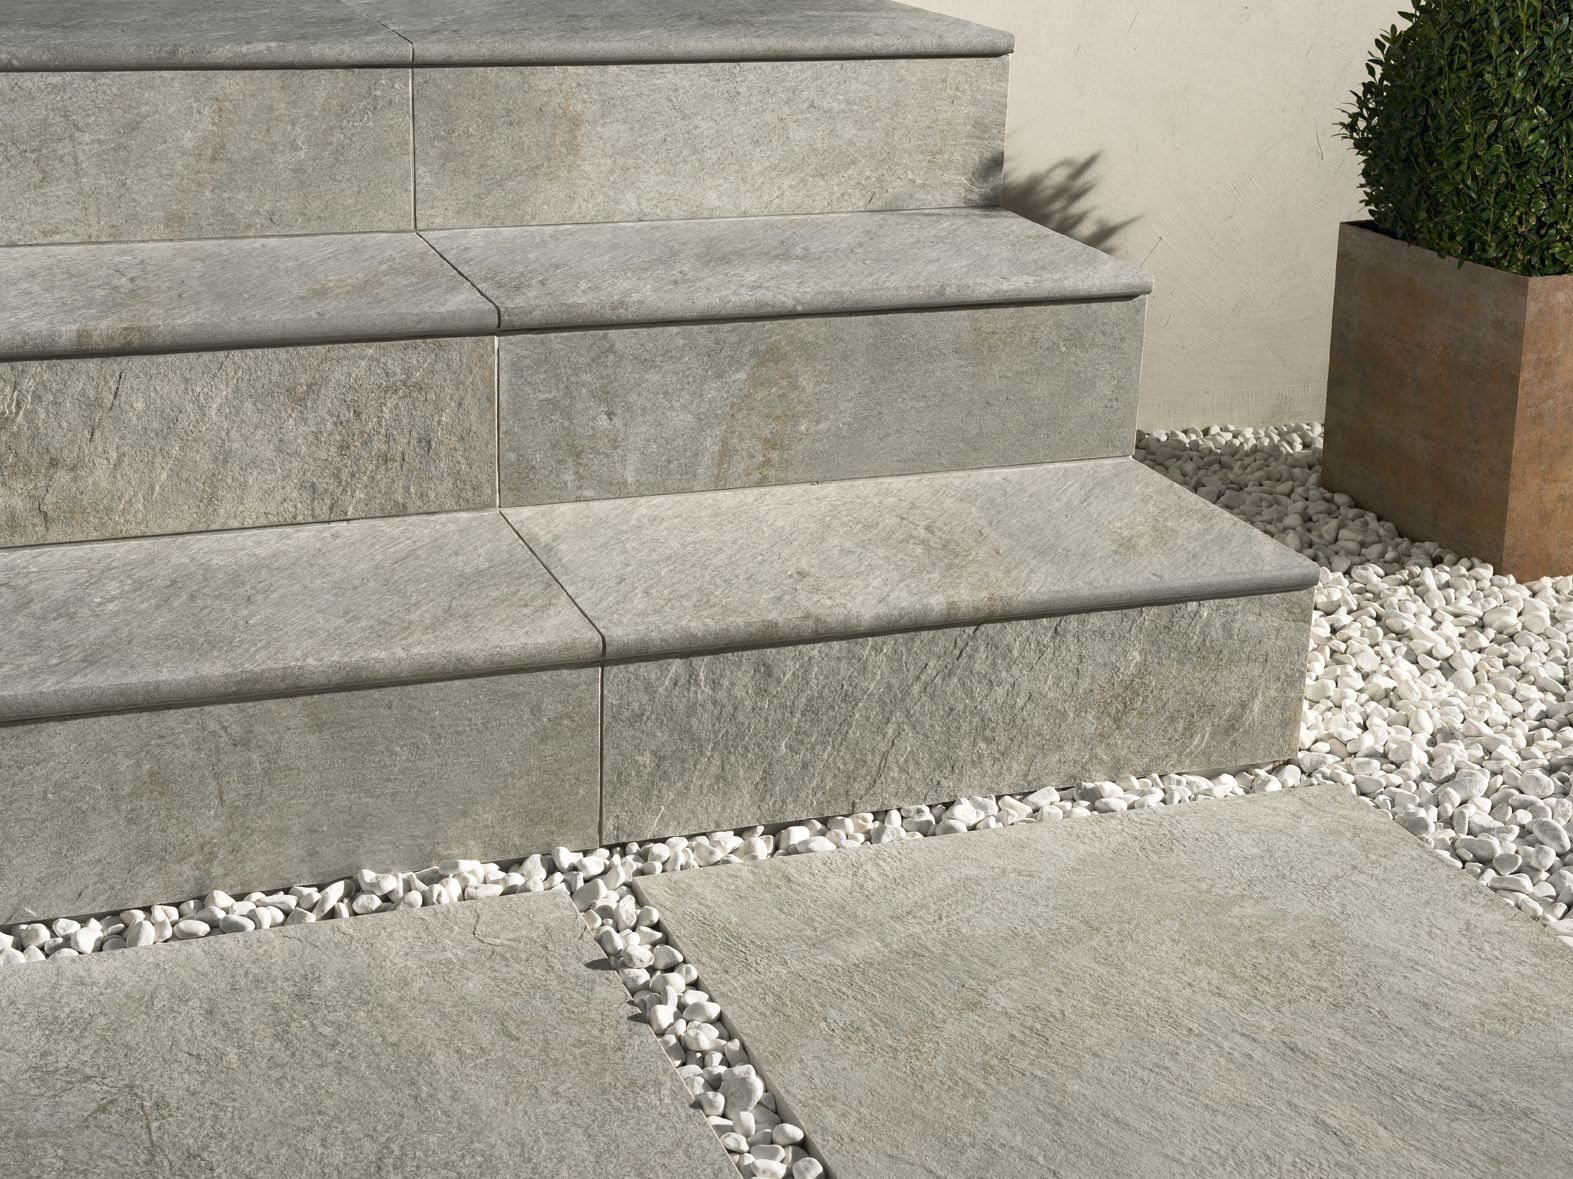 Porcelain stoneware outdoor floor tiles DUAL STEP by